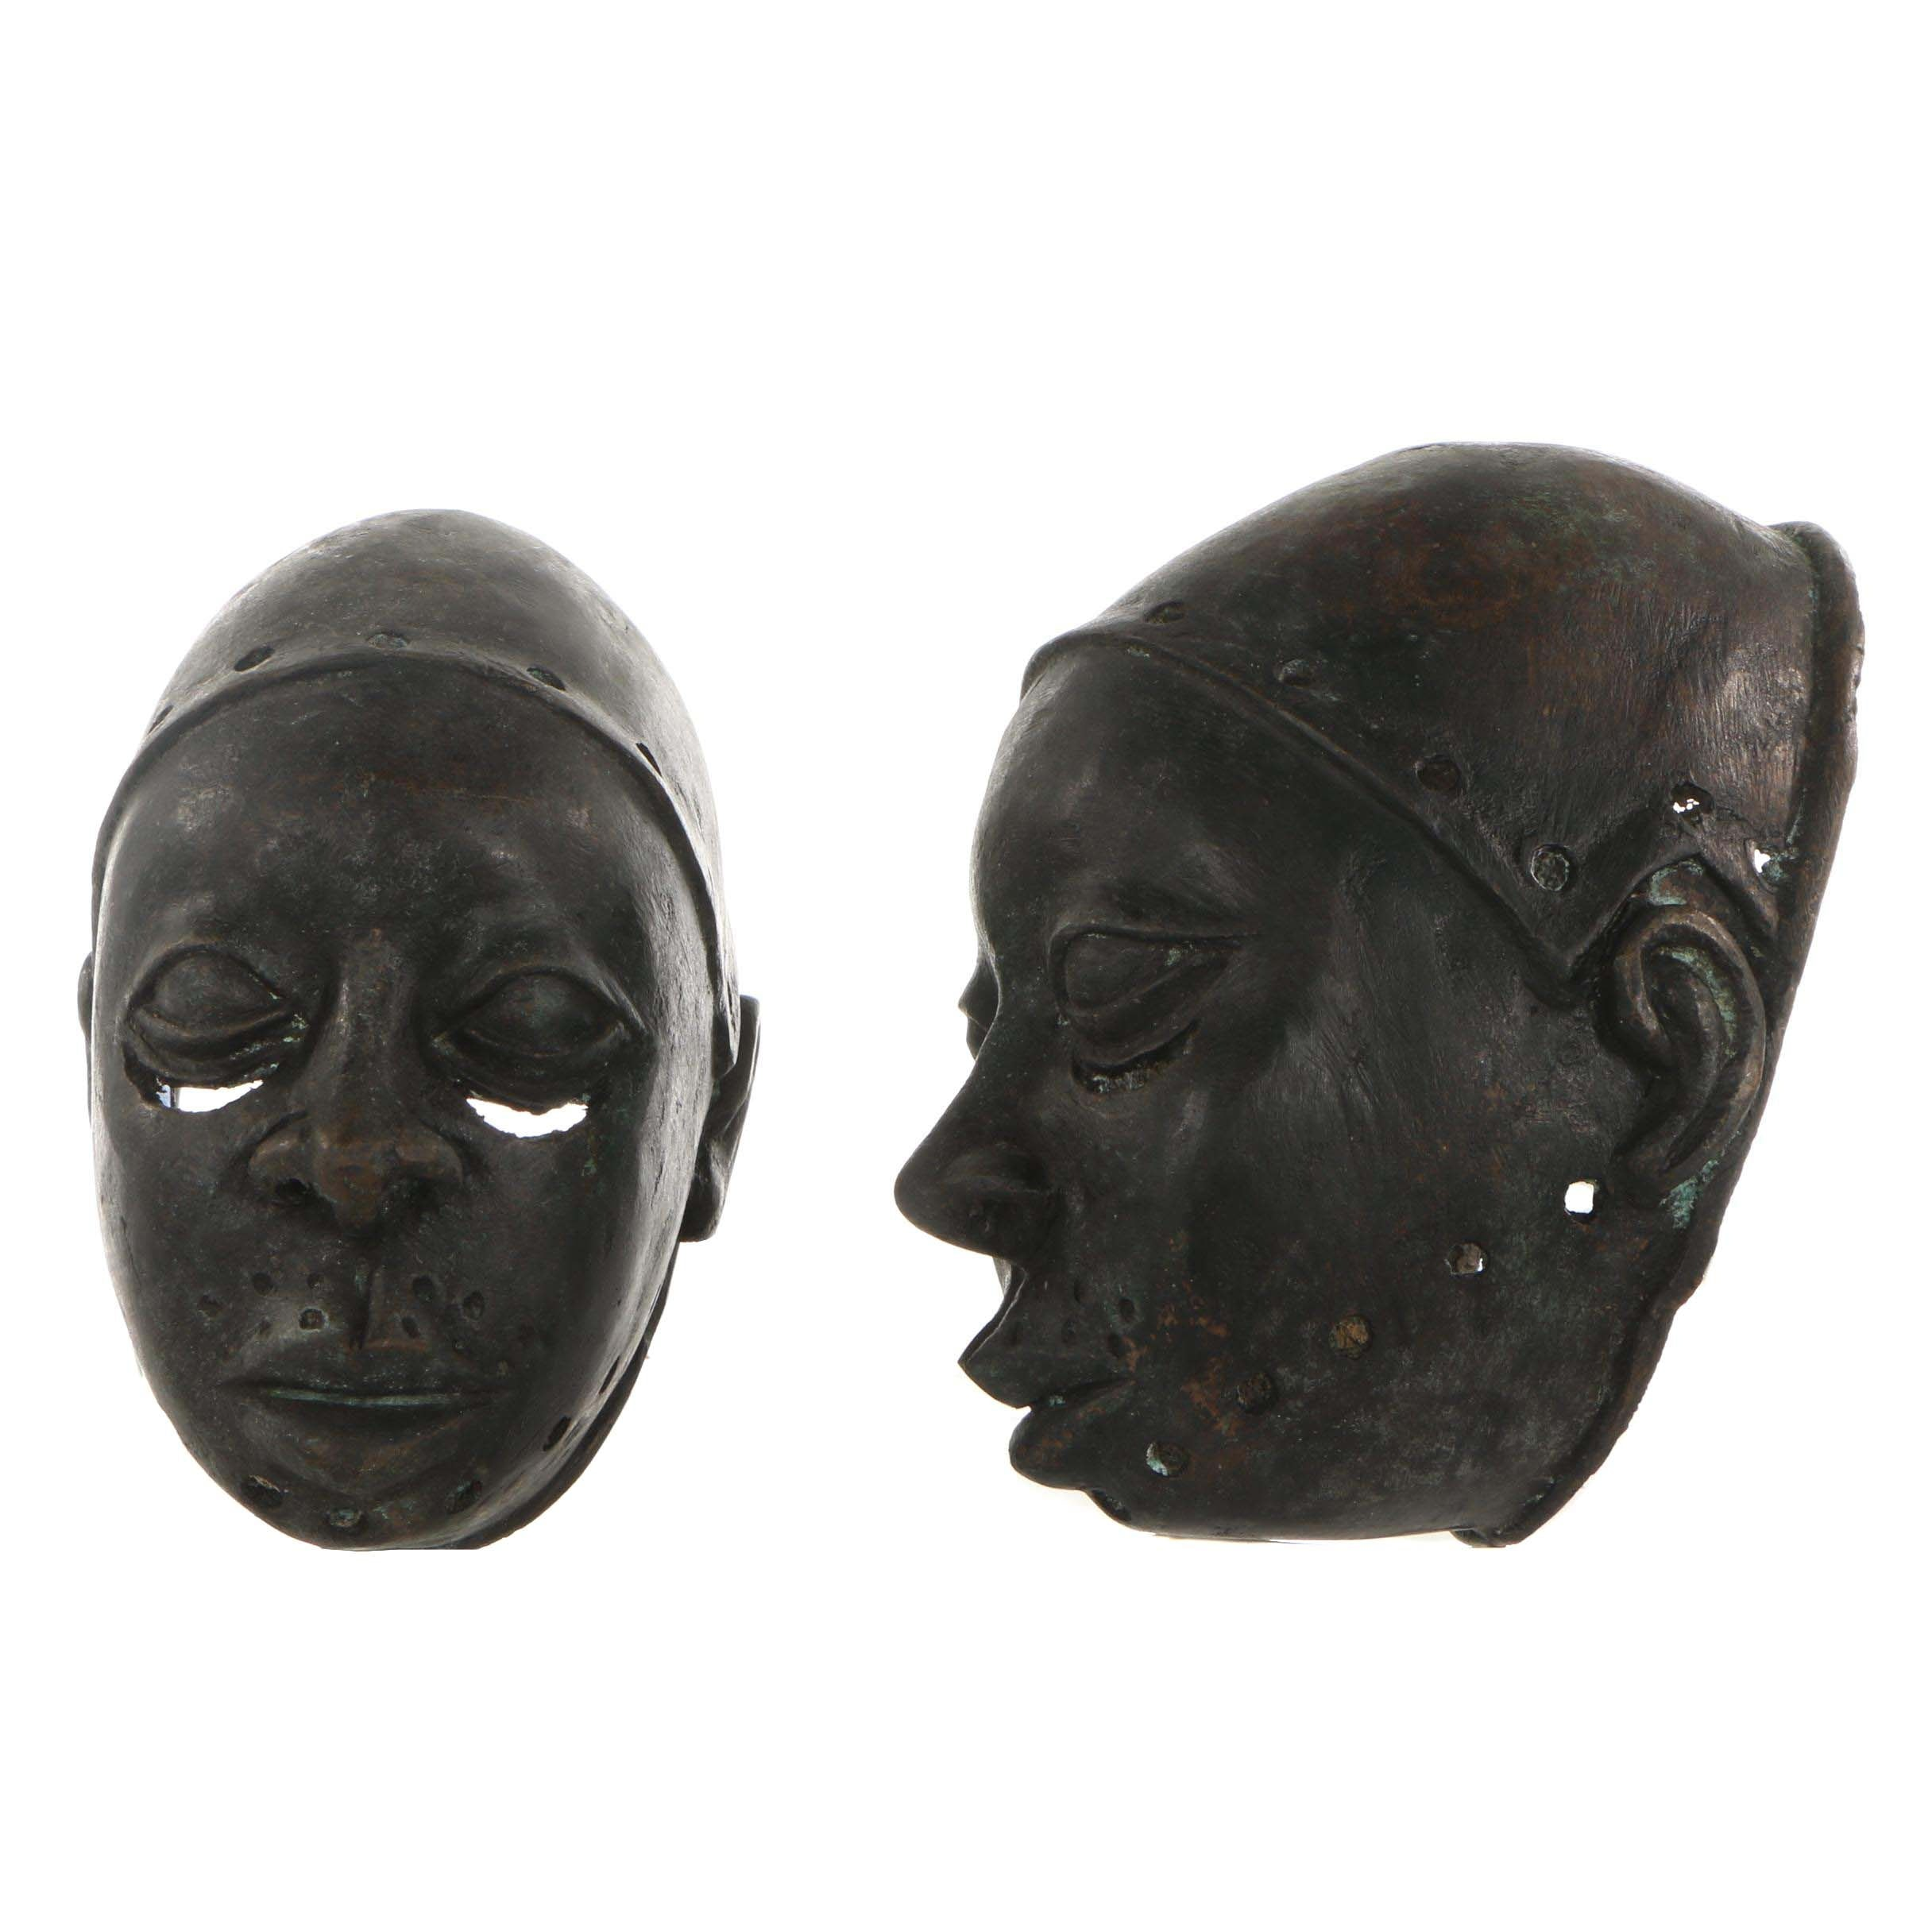 20th Century Decorative Copper Alloy Obalufon Masks